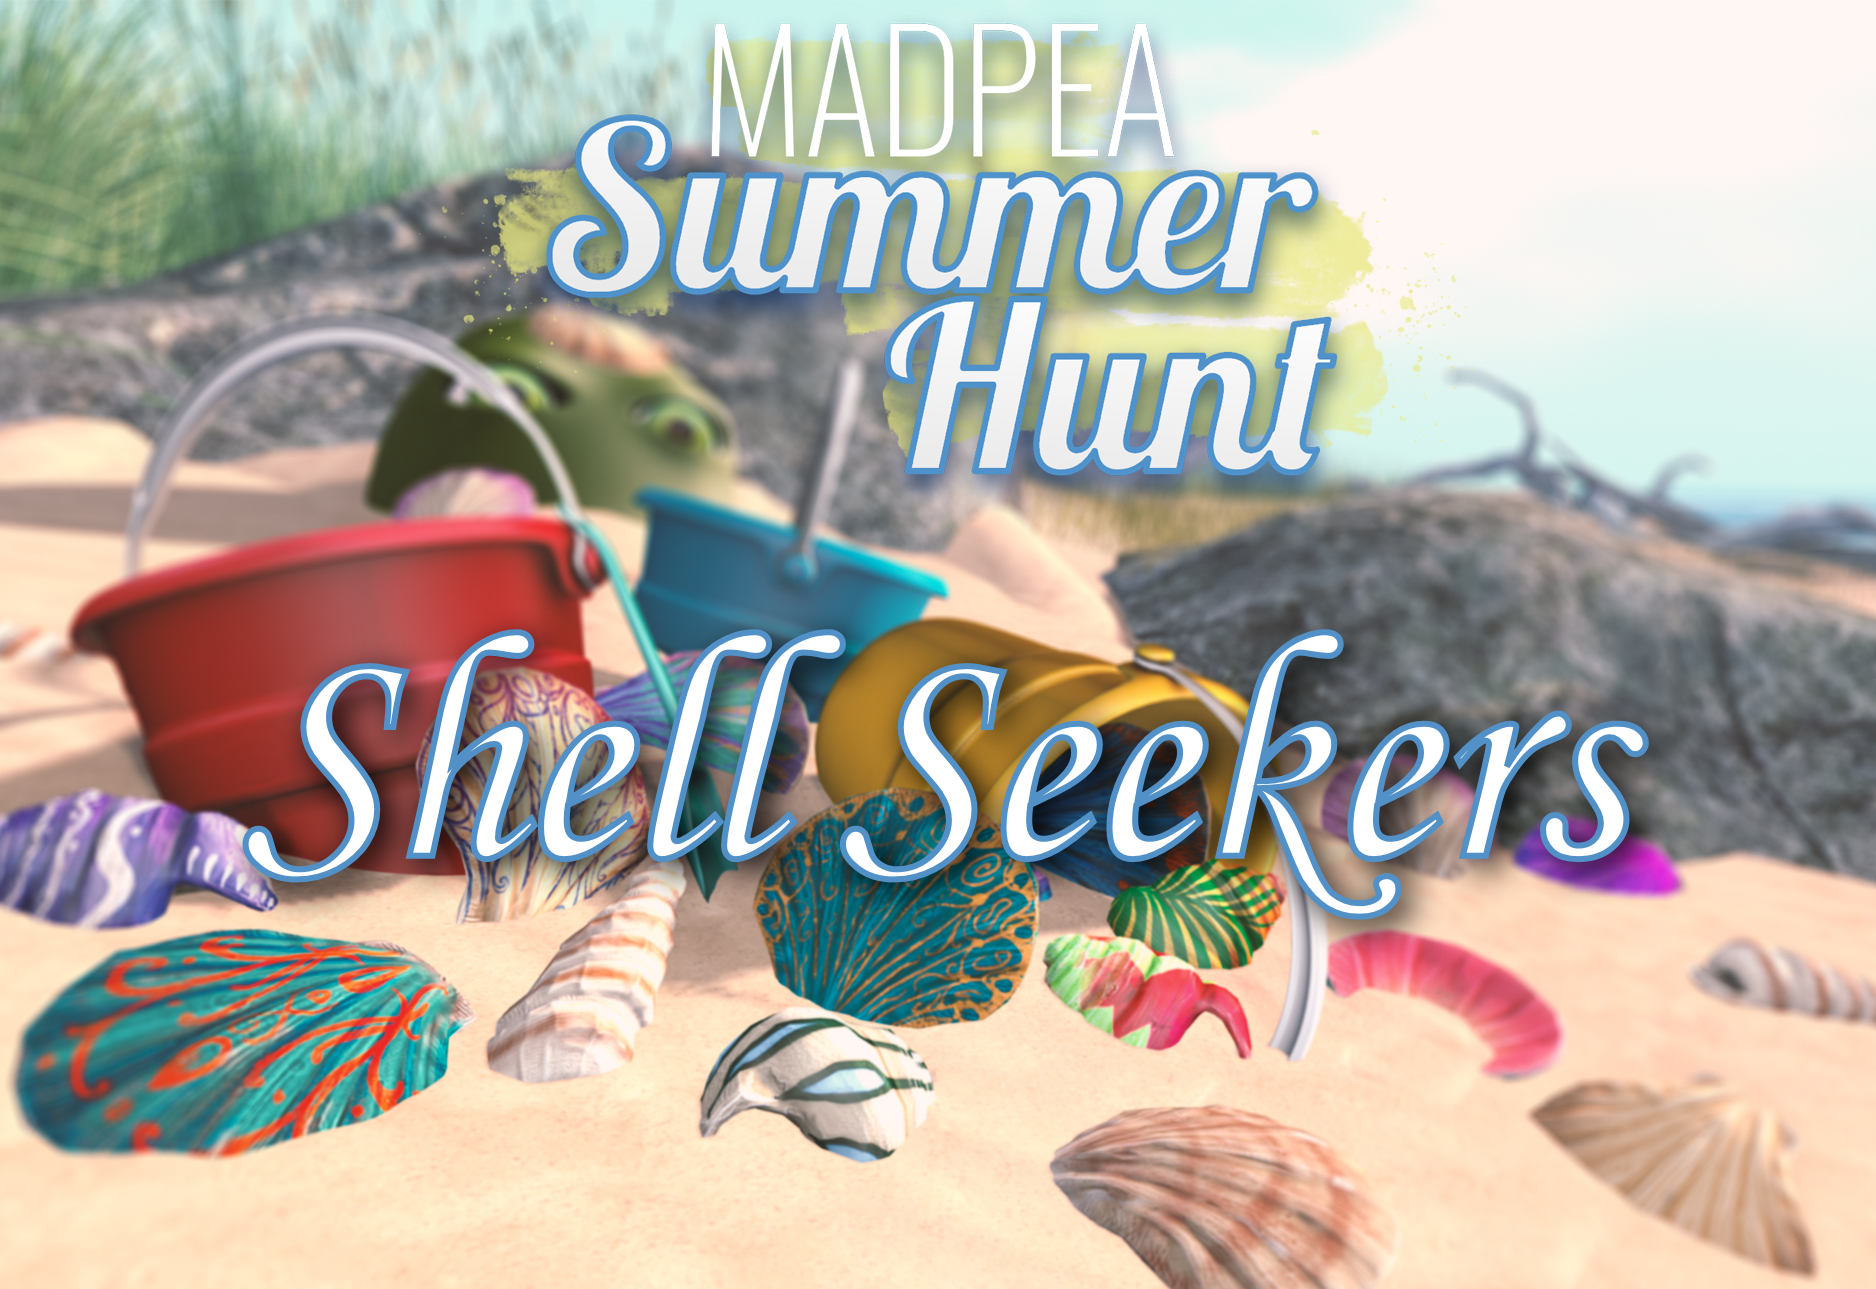 MadPea Summer Hunt – The Shell Seekers!